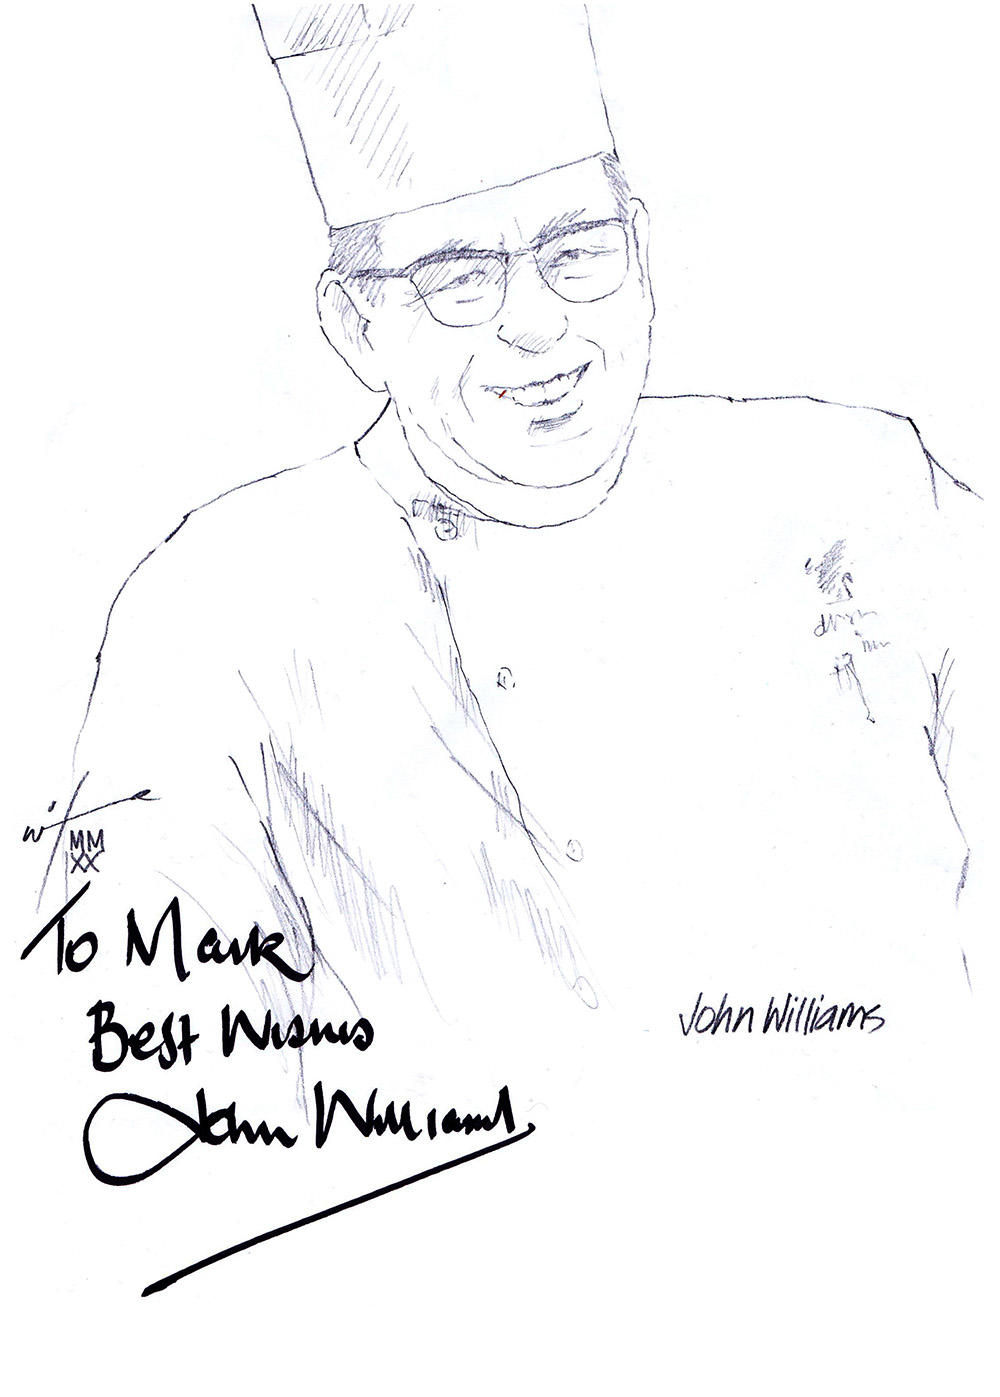 Autographed drawing of Chef John Williams